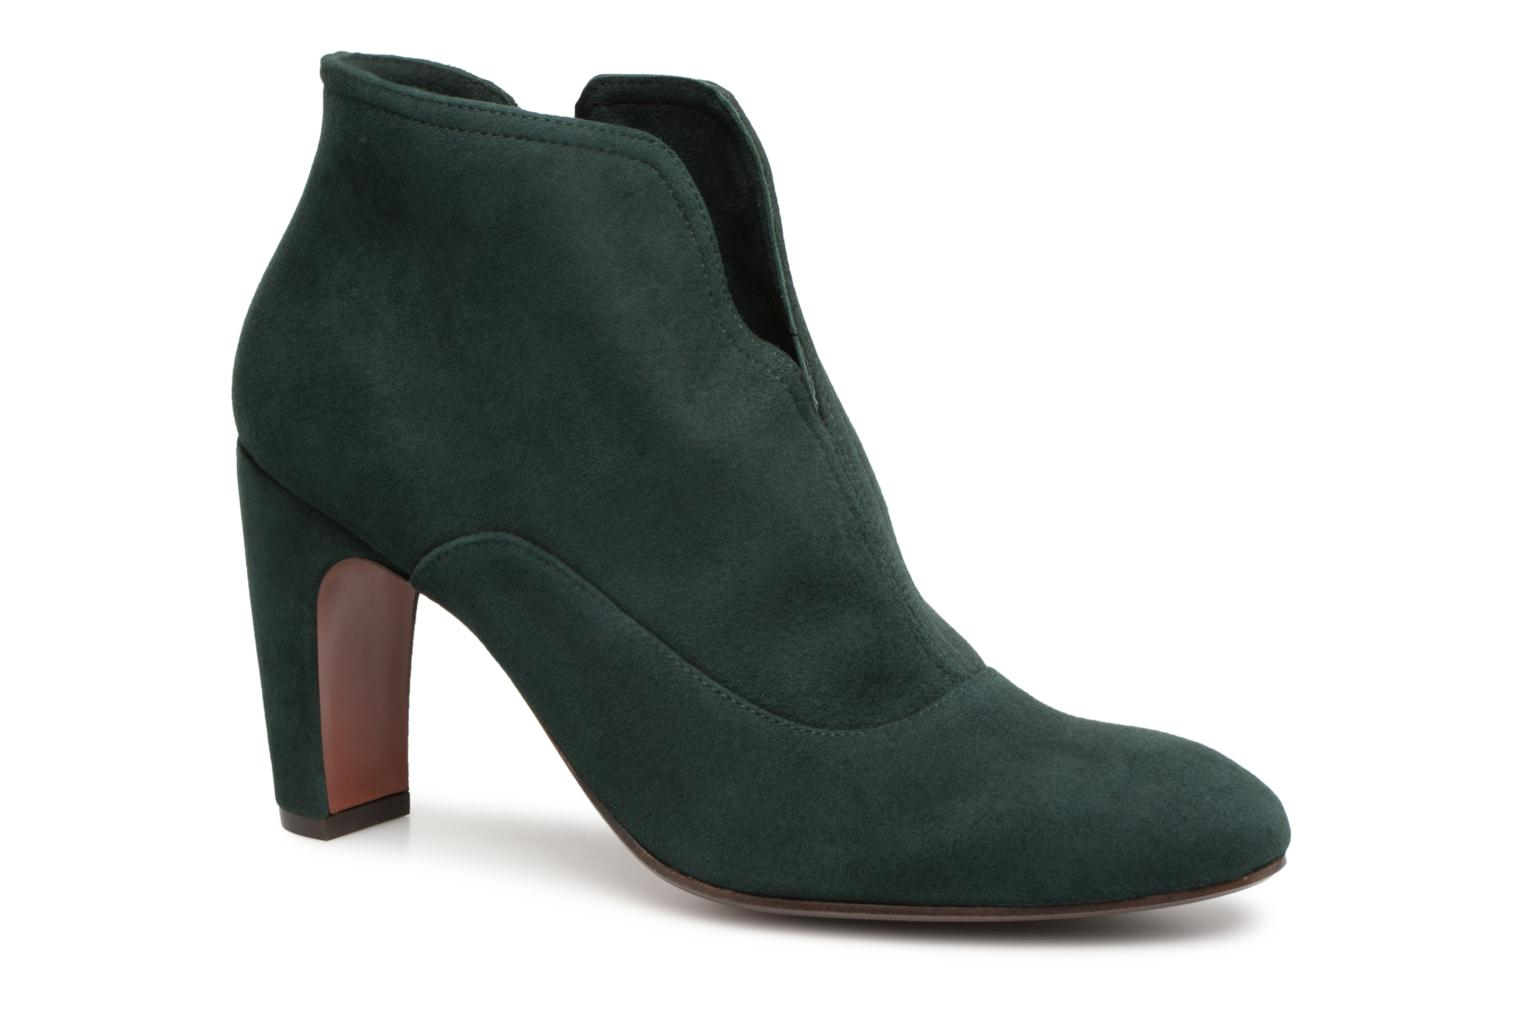 Chie X-Fedora Mihara X-Fedora Chie 33 (Green) - Ankle boots chez (345224) c4e47c